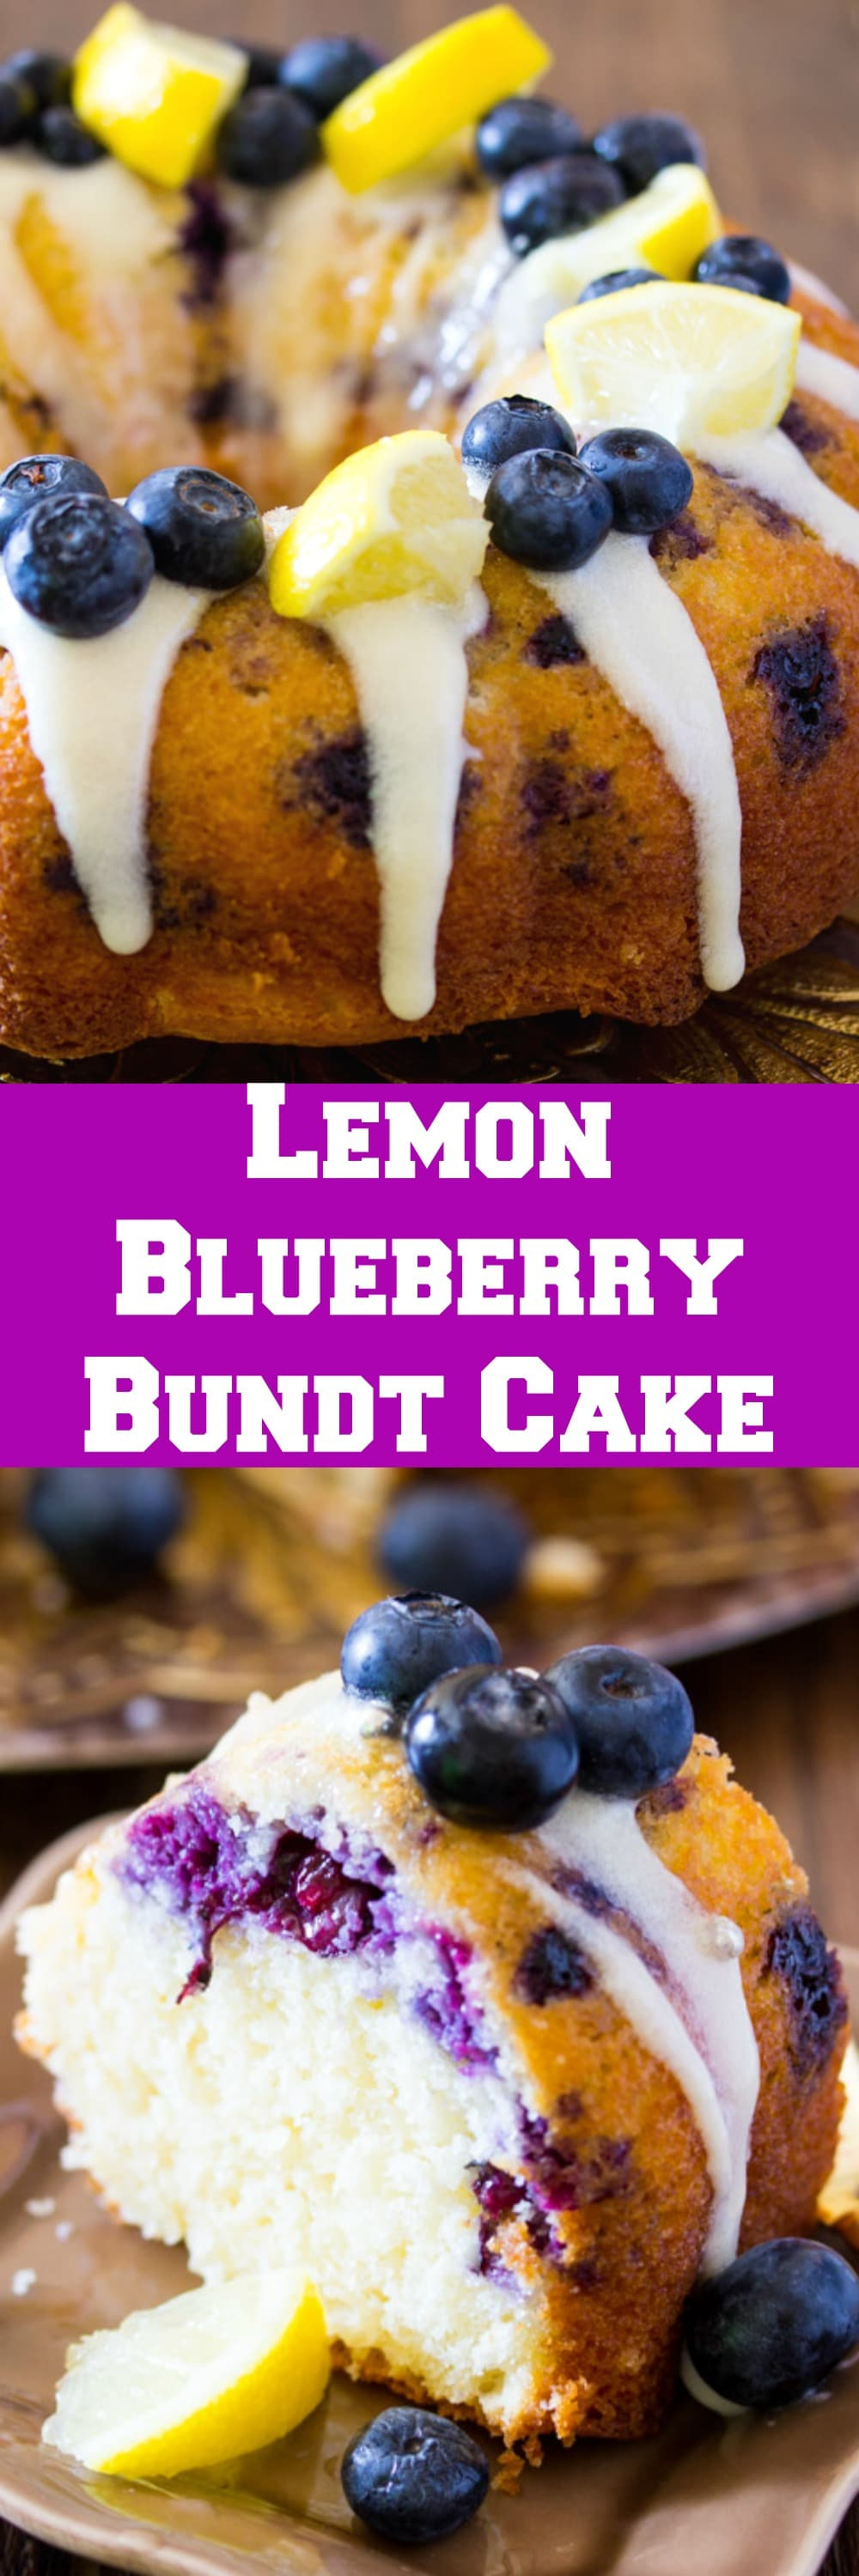 Lemon Blueberry Cake with Cream Cheese Icing